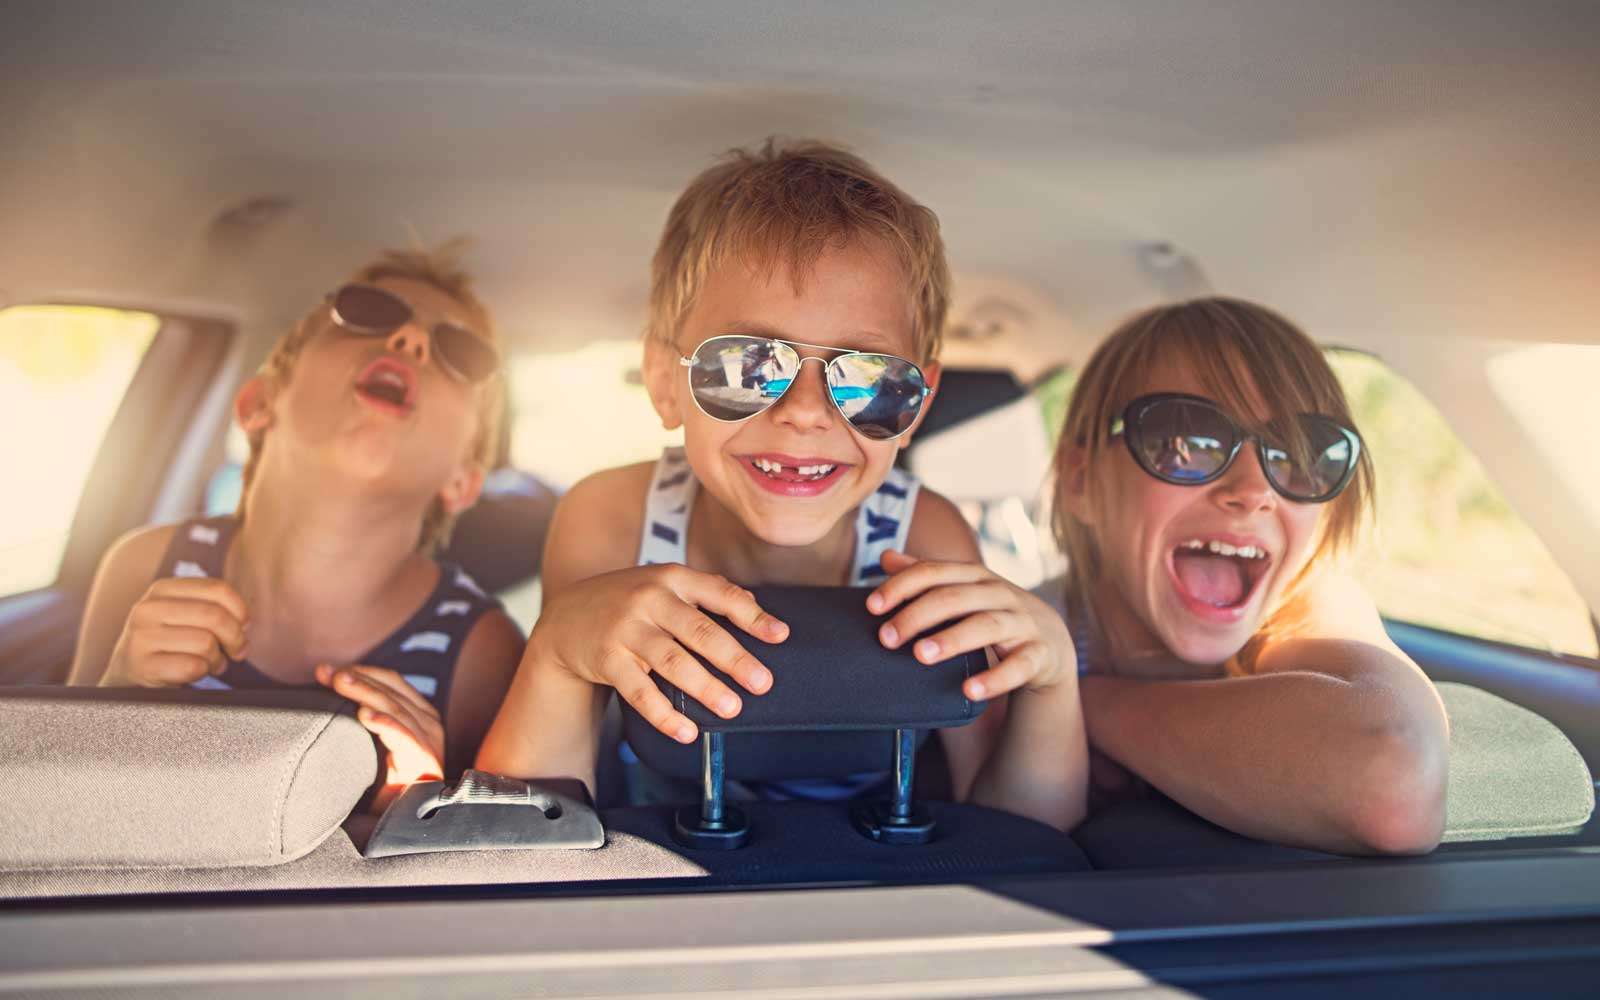 3 Ways to Keep Children Busy on a Road Trip